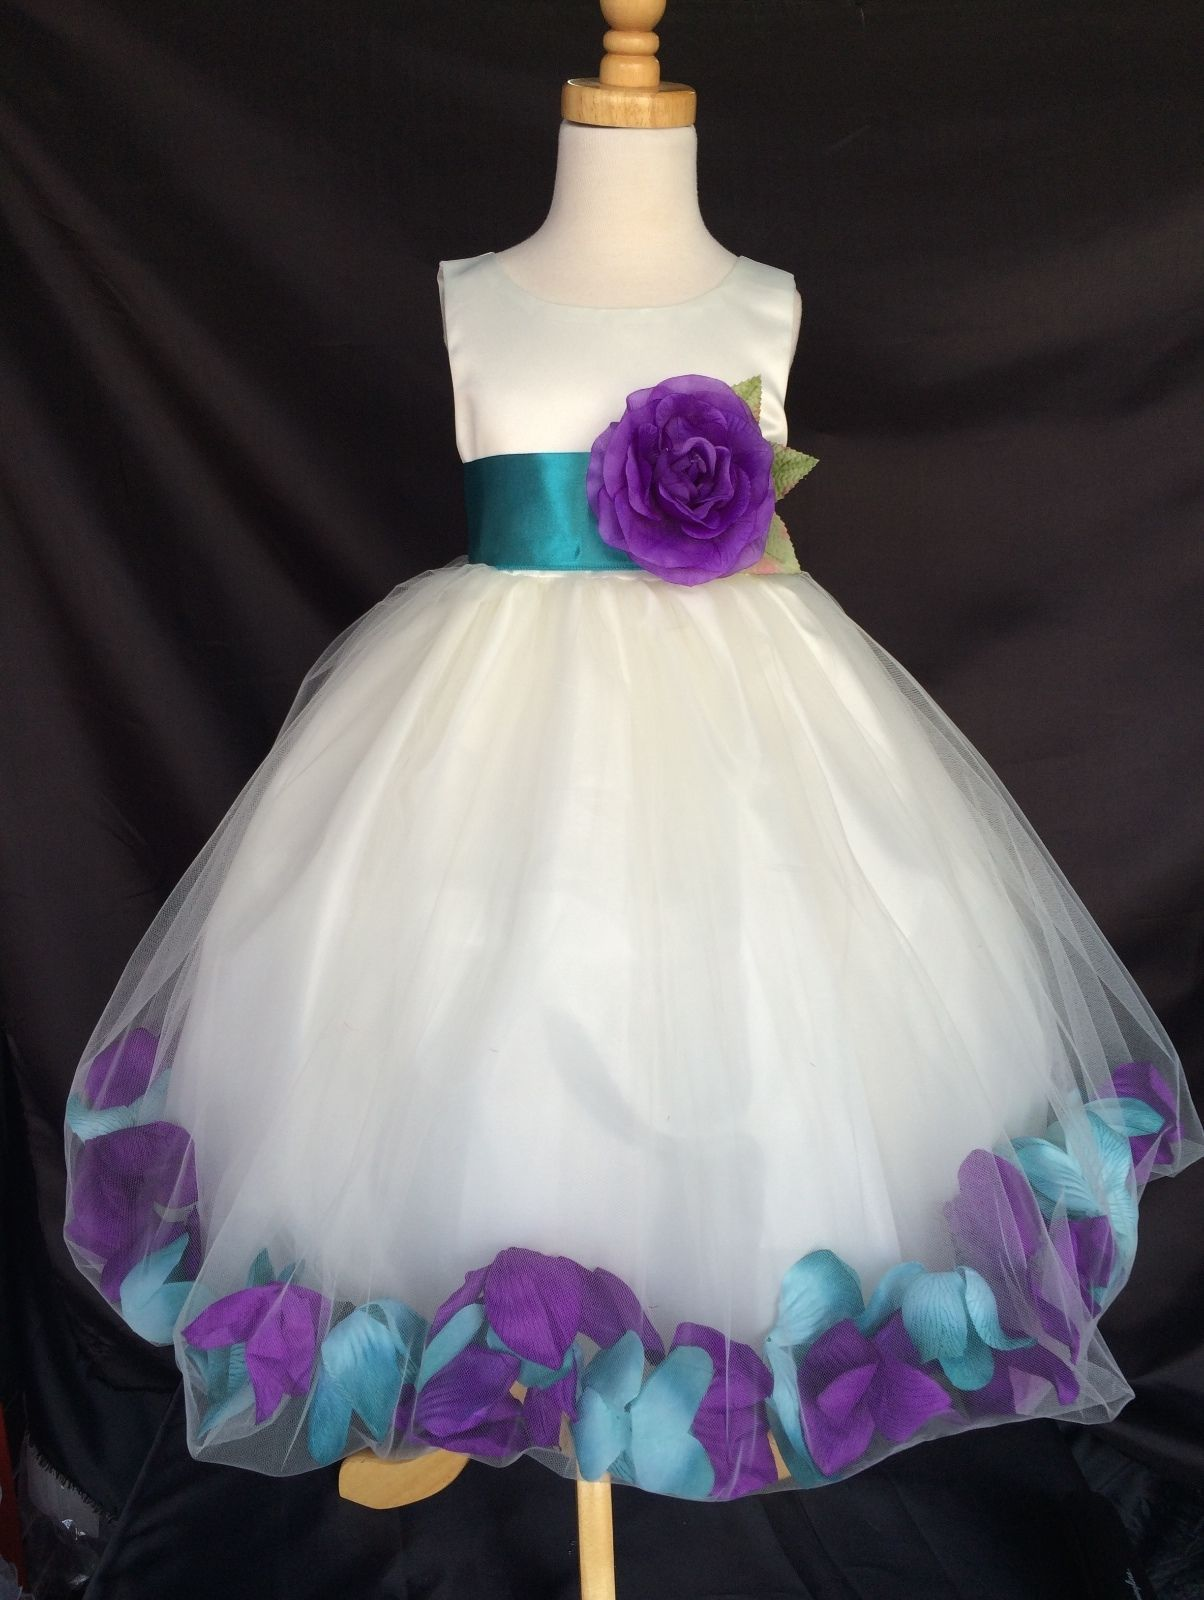 Details About Mardi Grass Ivory Flower Girl Bridesmaids Mixed